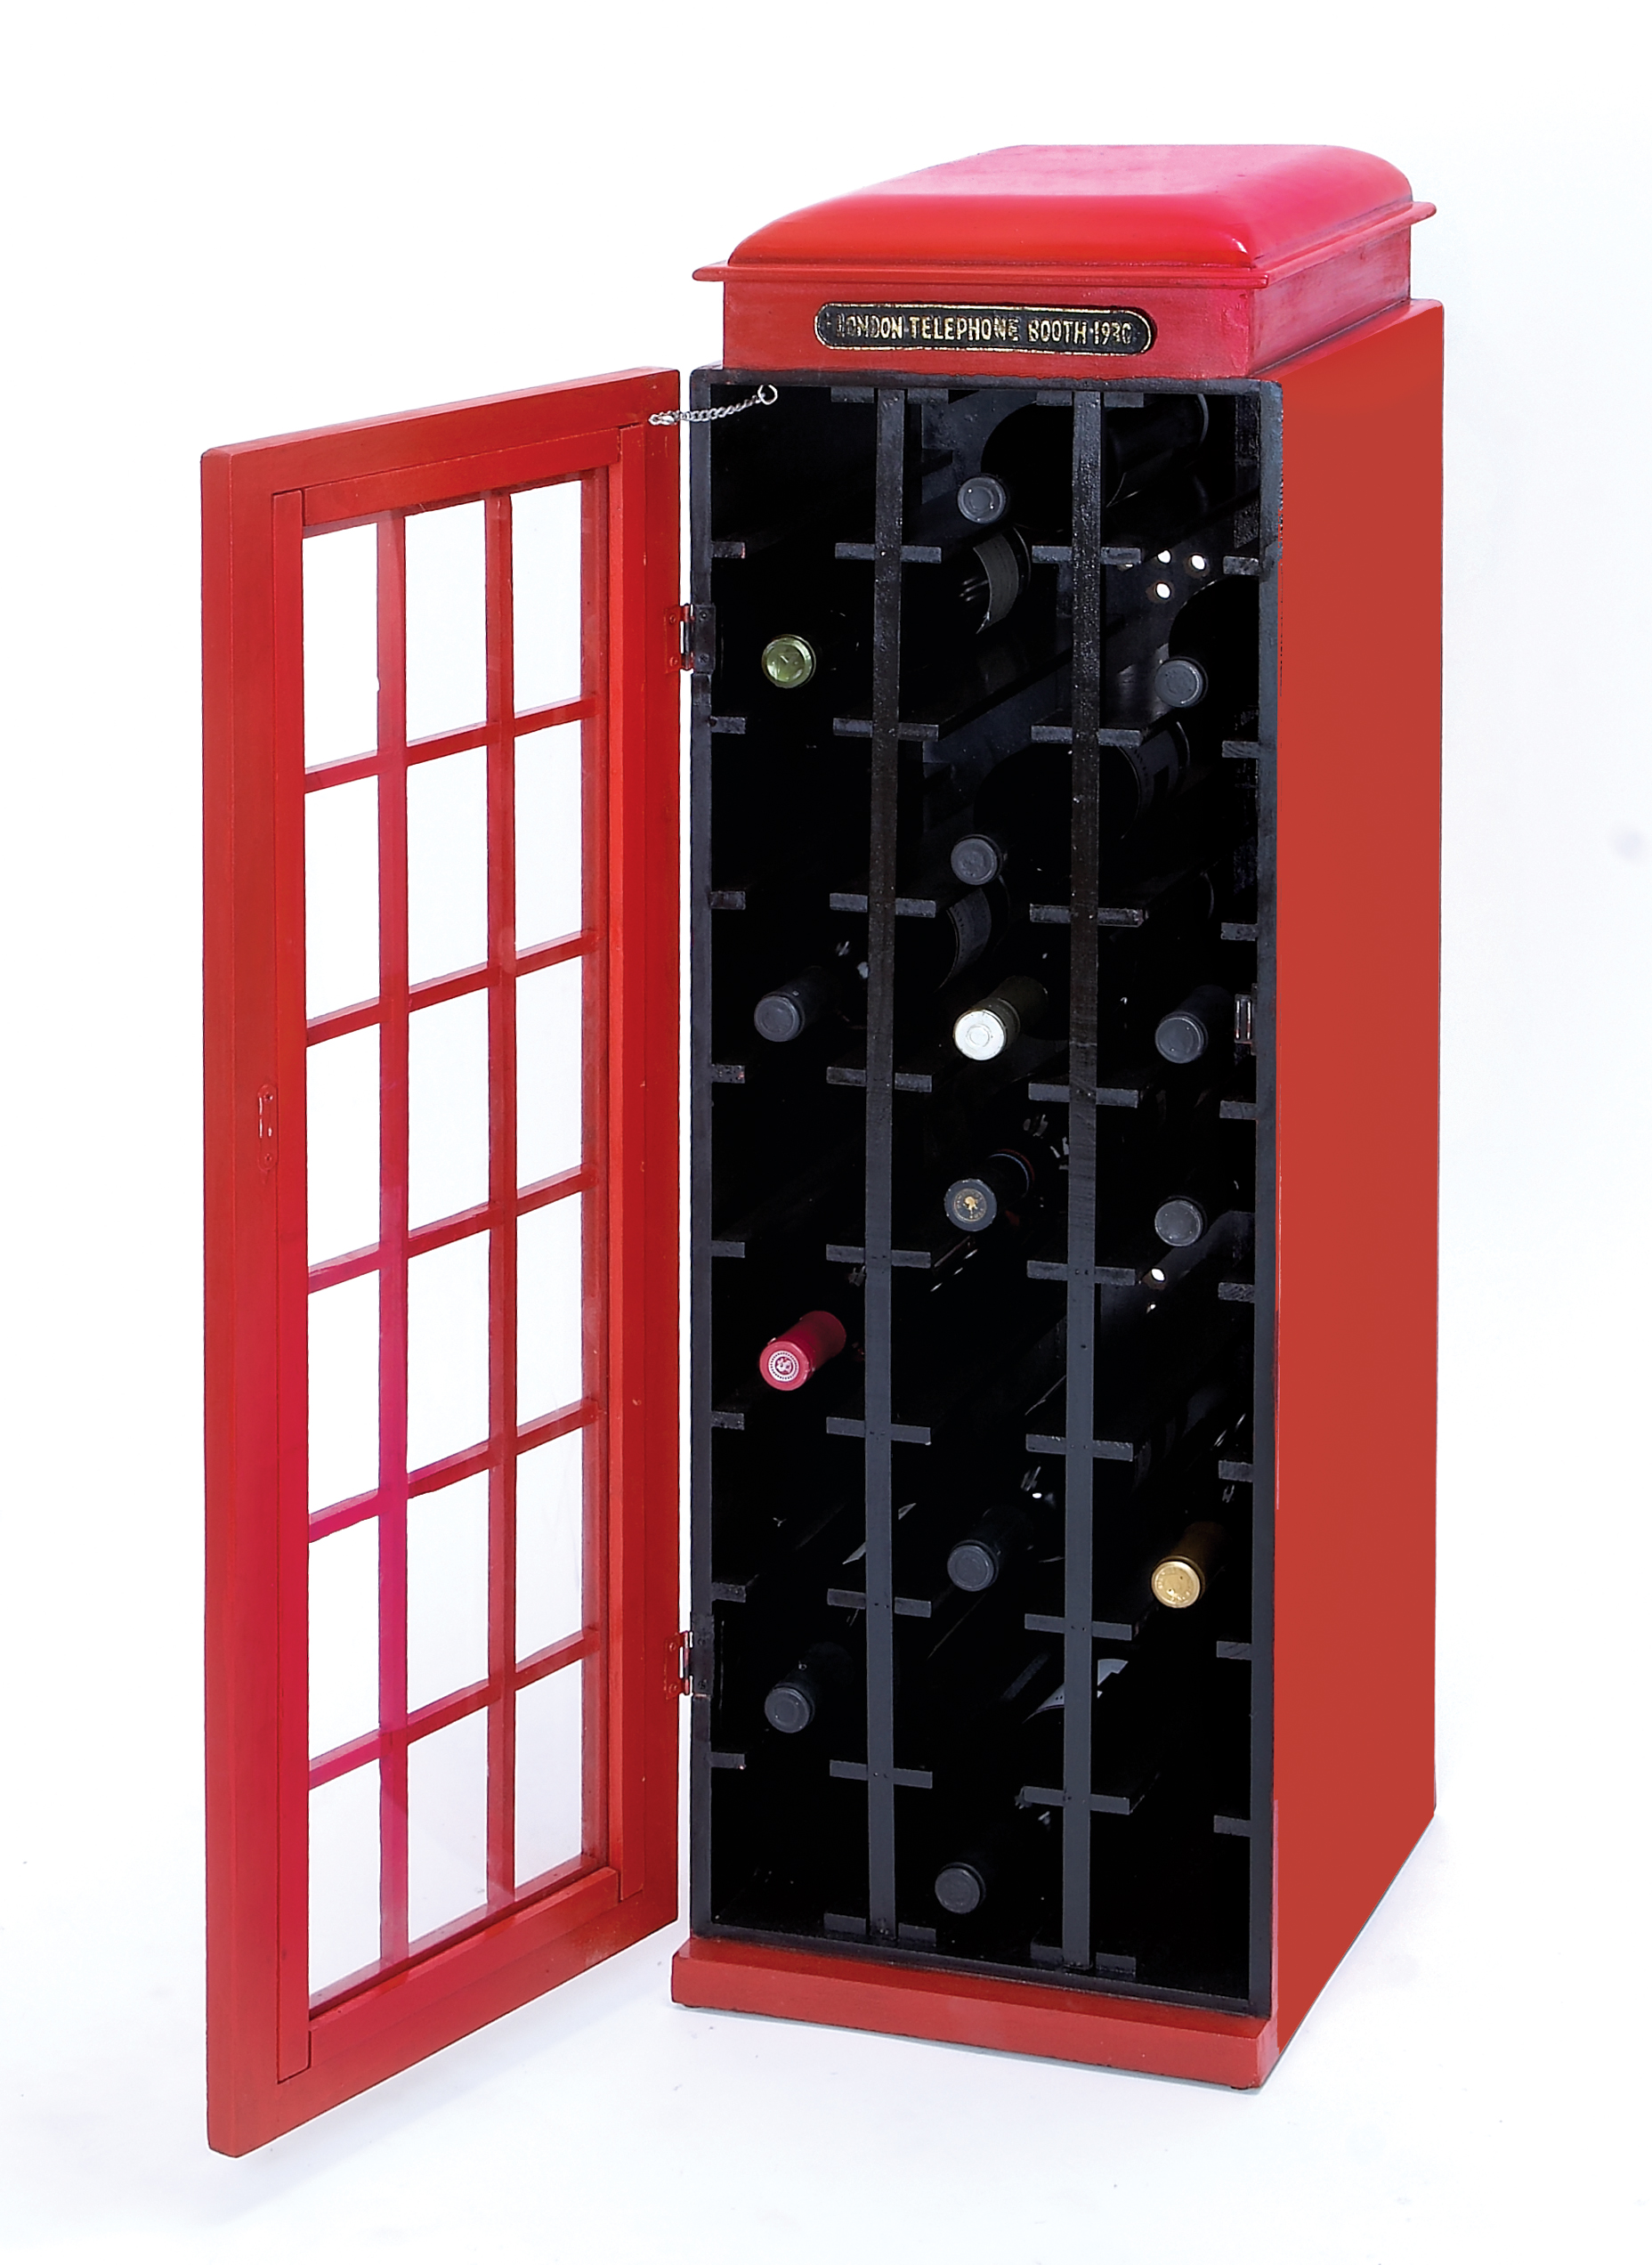 Decmode Modern 41 X 14 Inch Red British Telephone Booth 27-Bottle Wooden Wine Cabinet, Red by DecMode